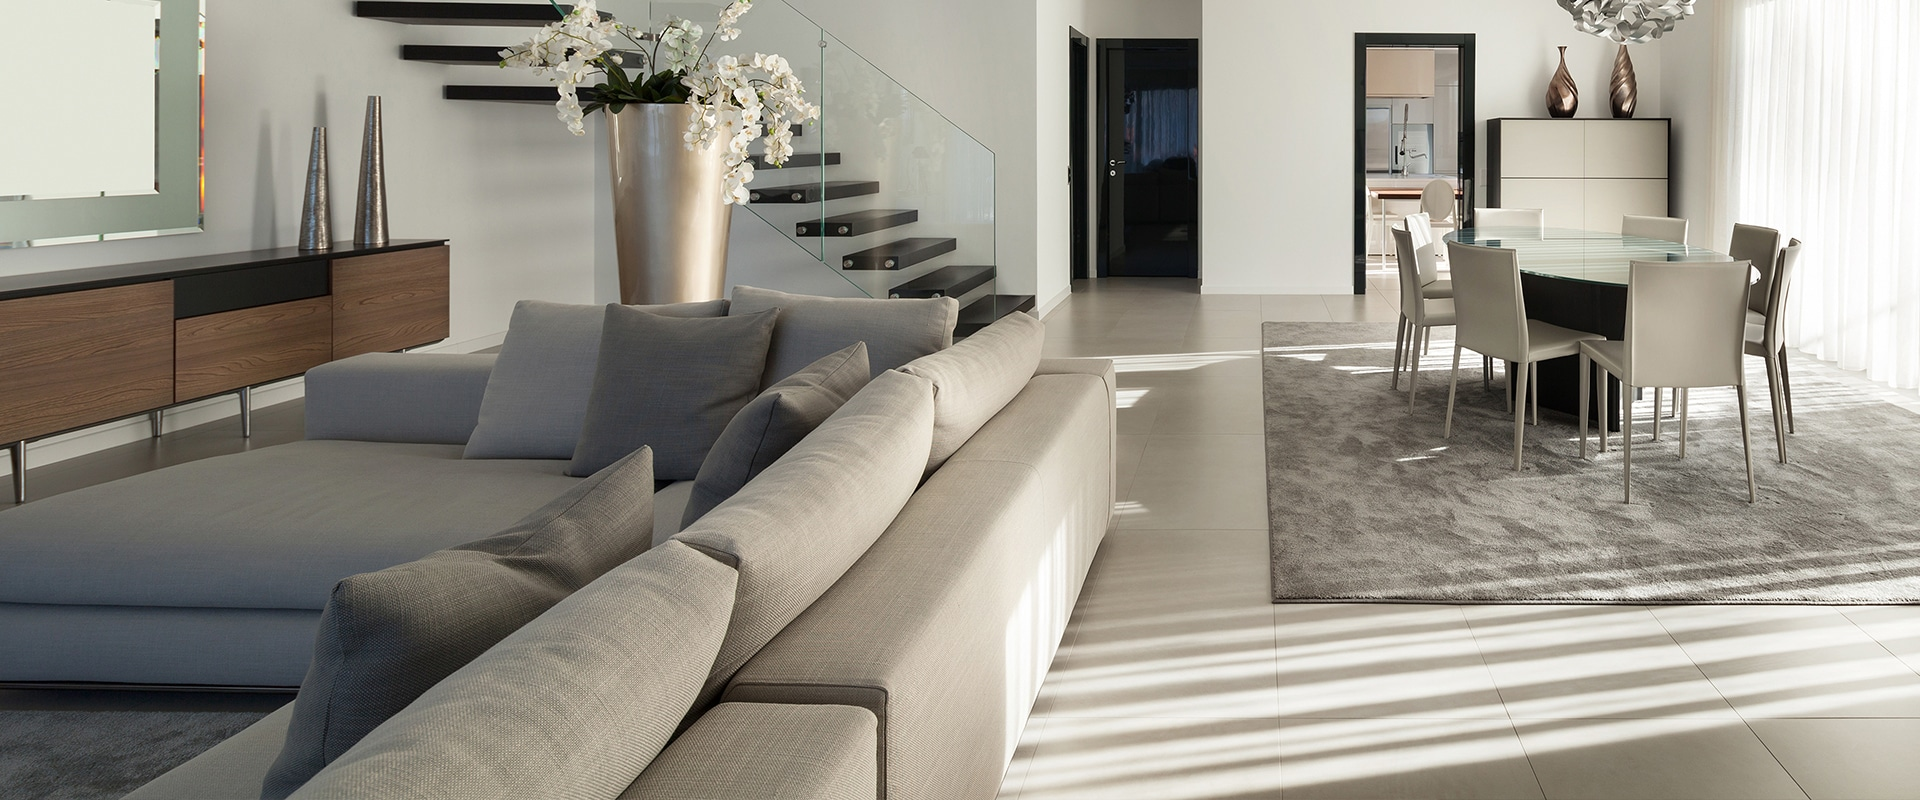 living and dining room modern style